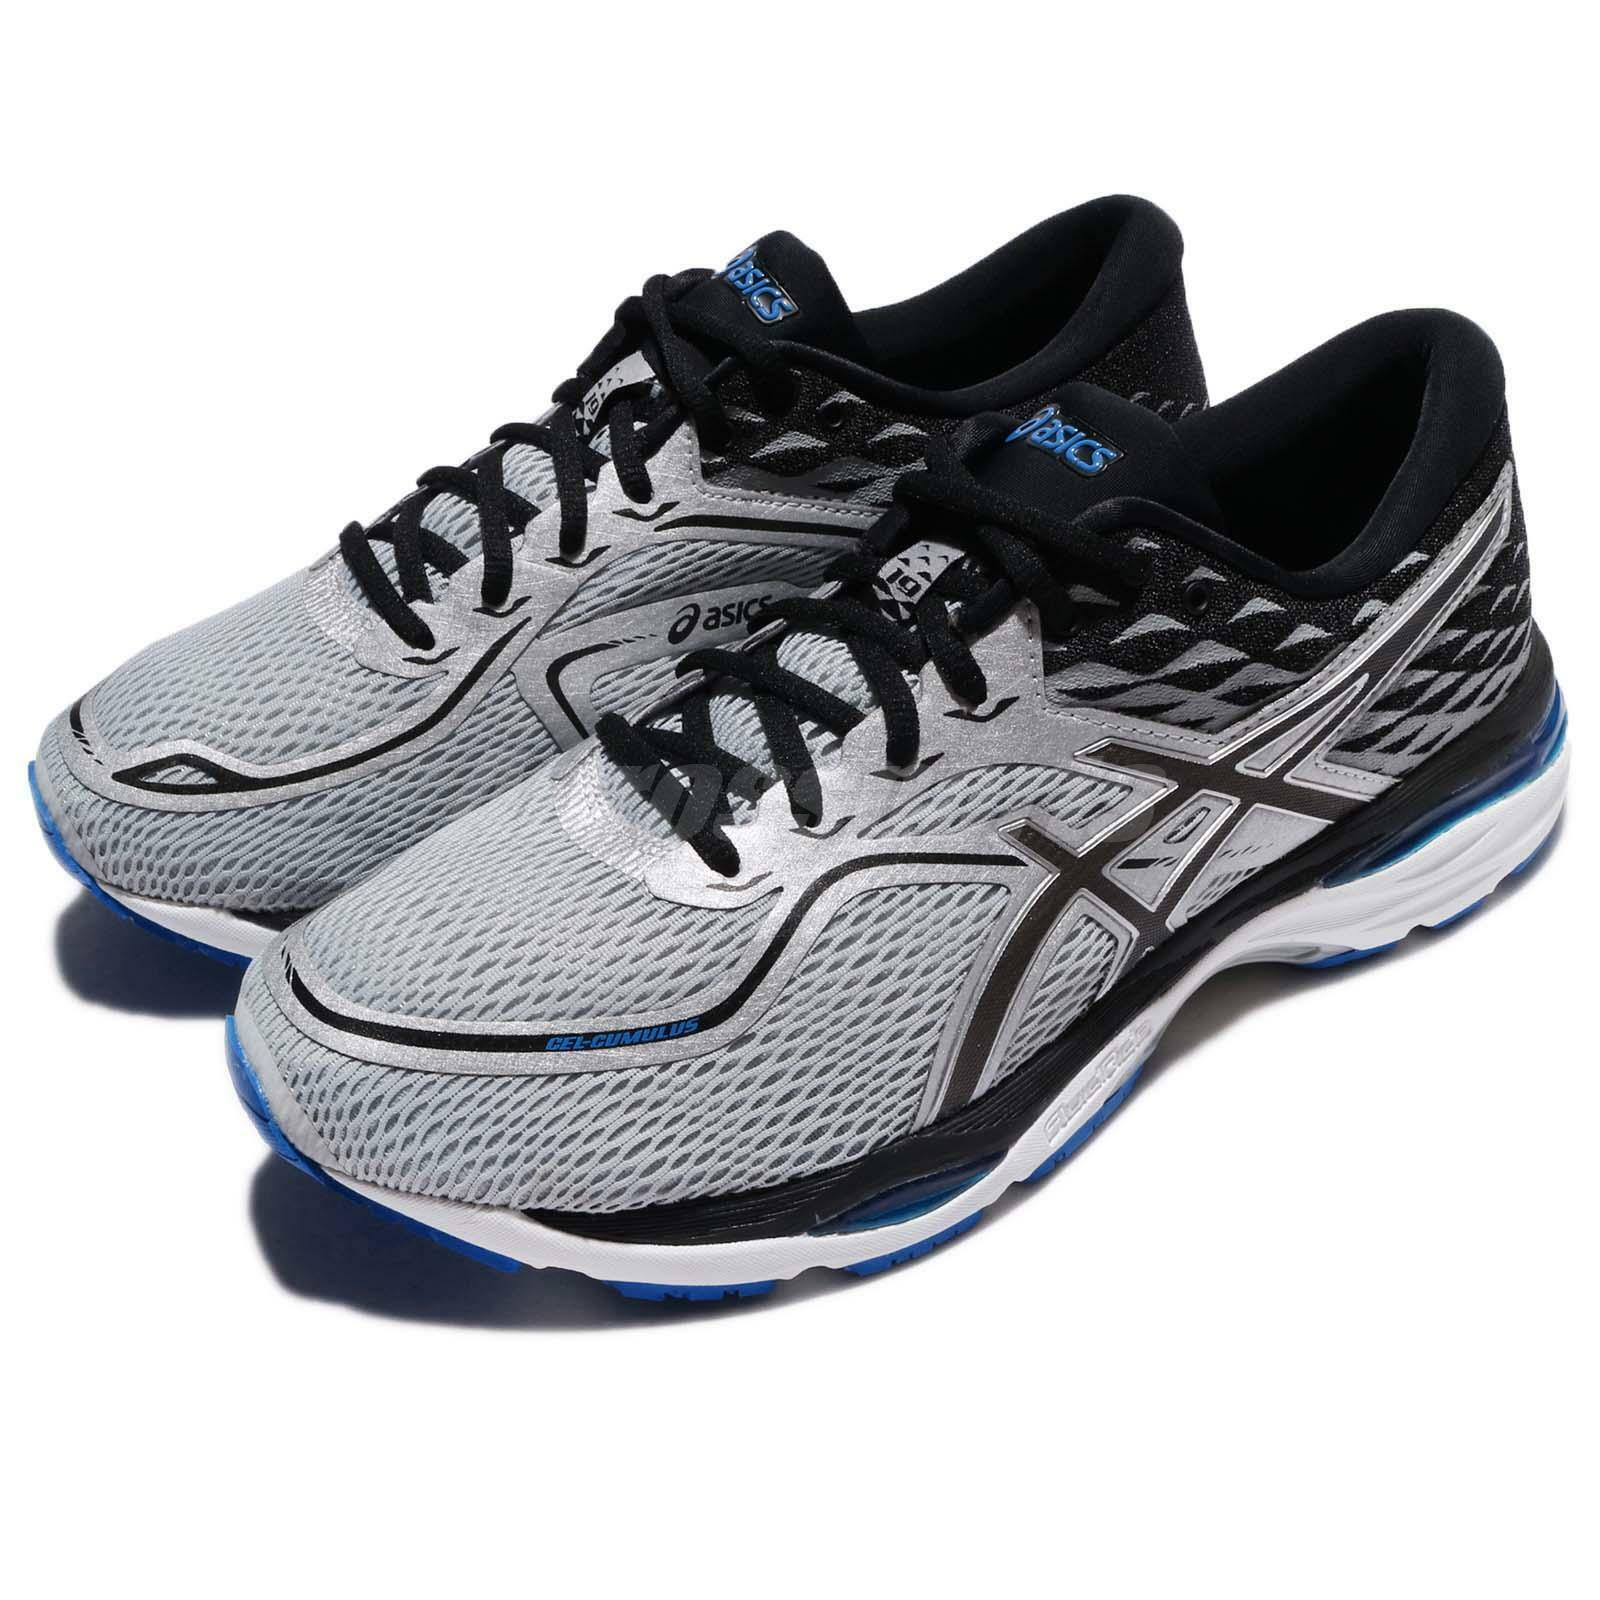 Asics Gel-Cumulus 19 4E Extra Wide  Glacier Grey Men Running shoes T7C0N-9690  your satisfaction is our target